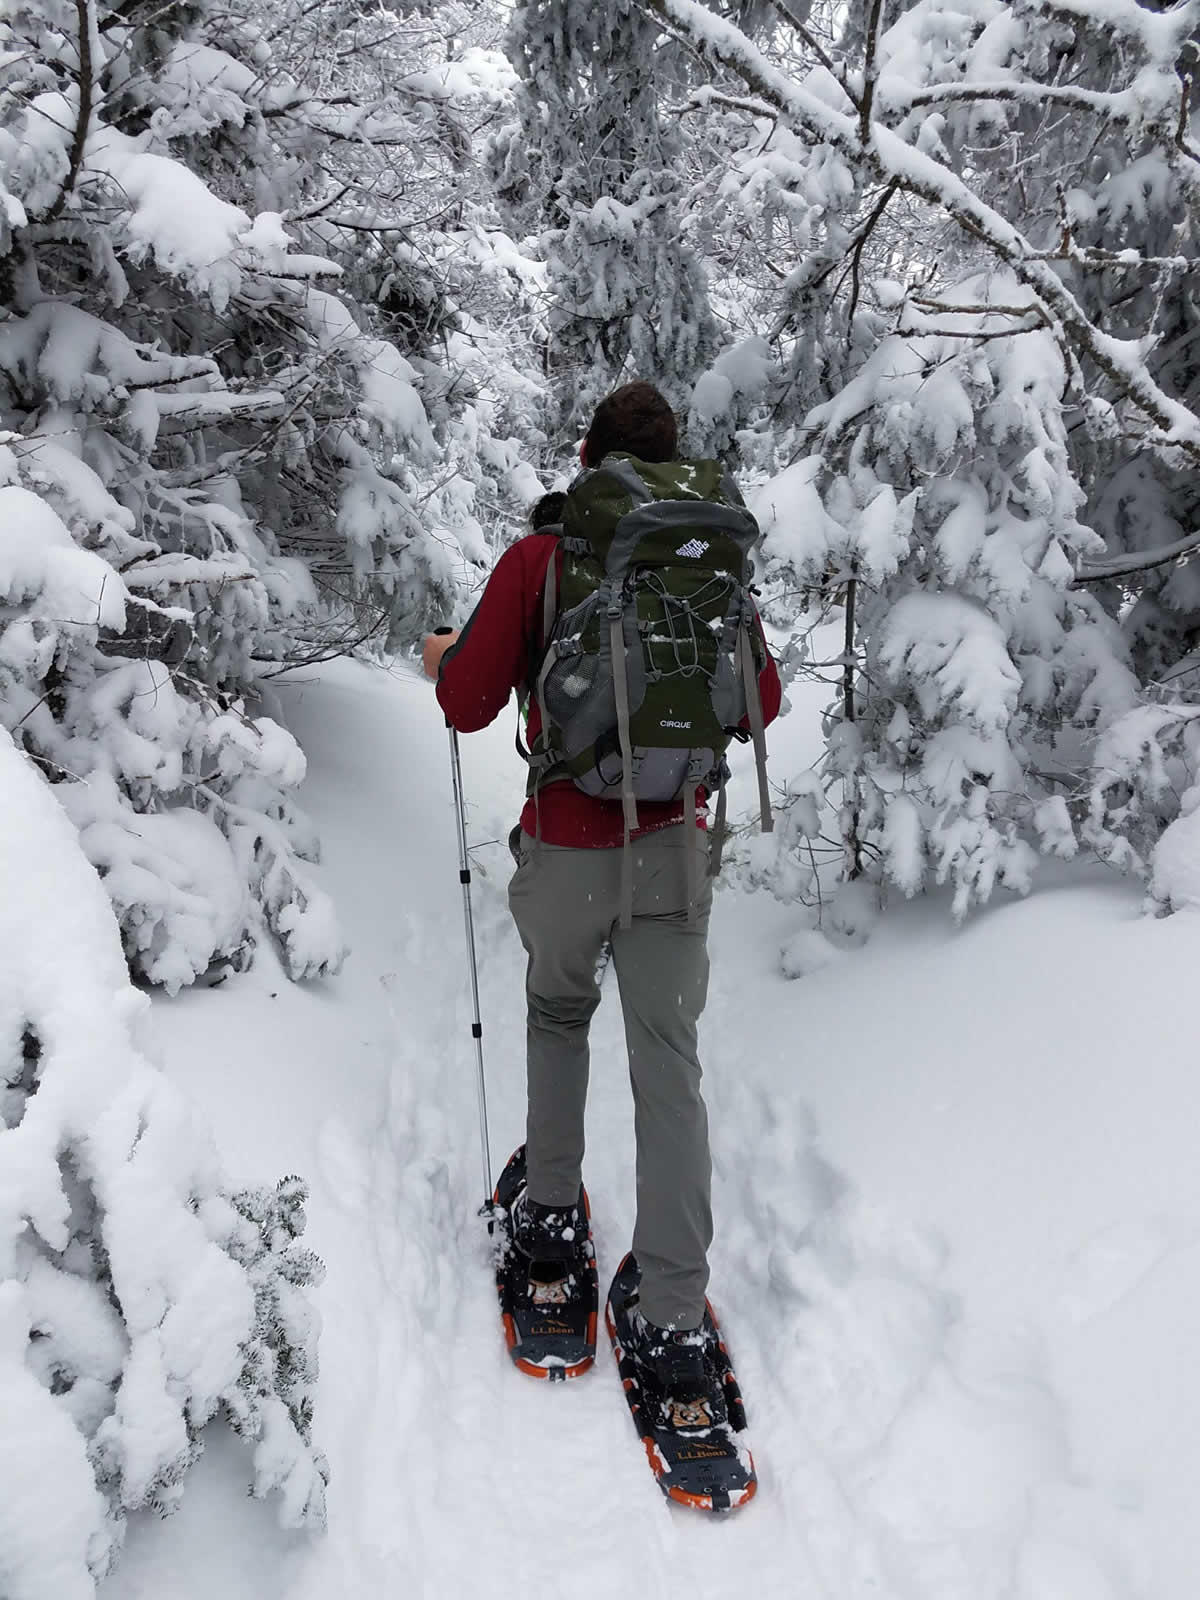 snowshoeing in woods by Cristin Steding